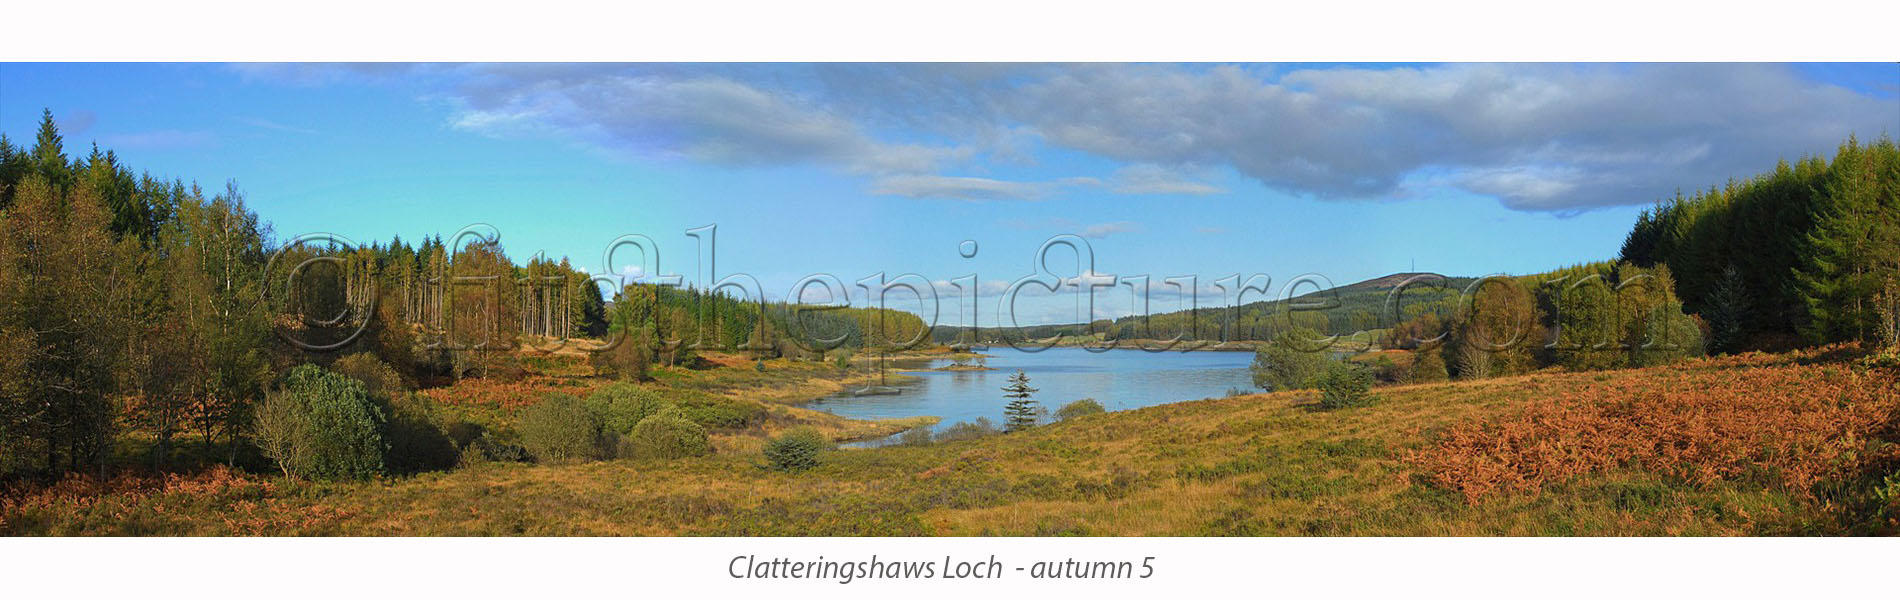 clatteringshaws_autumn_5.jpg